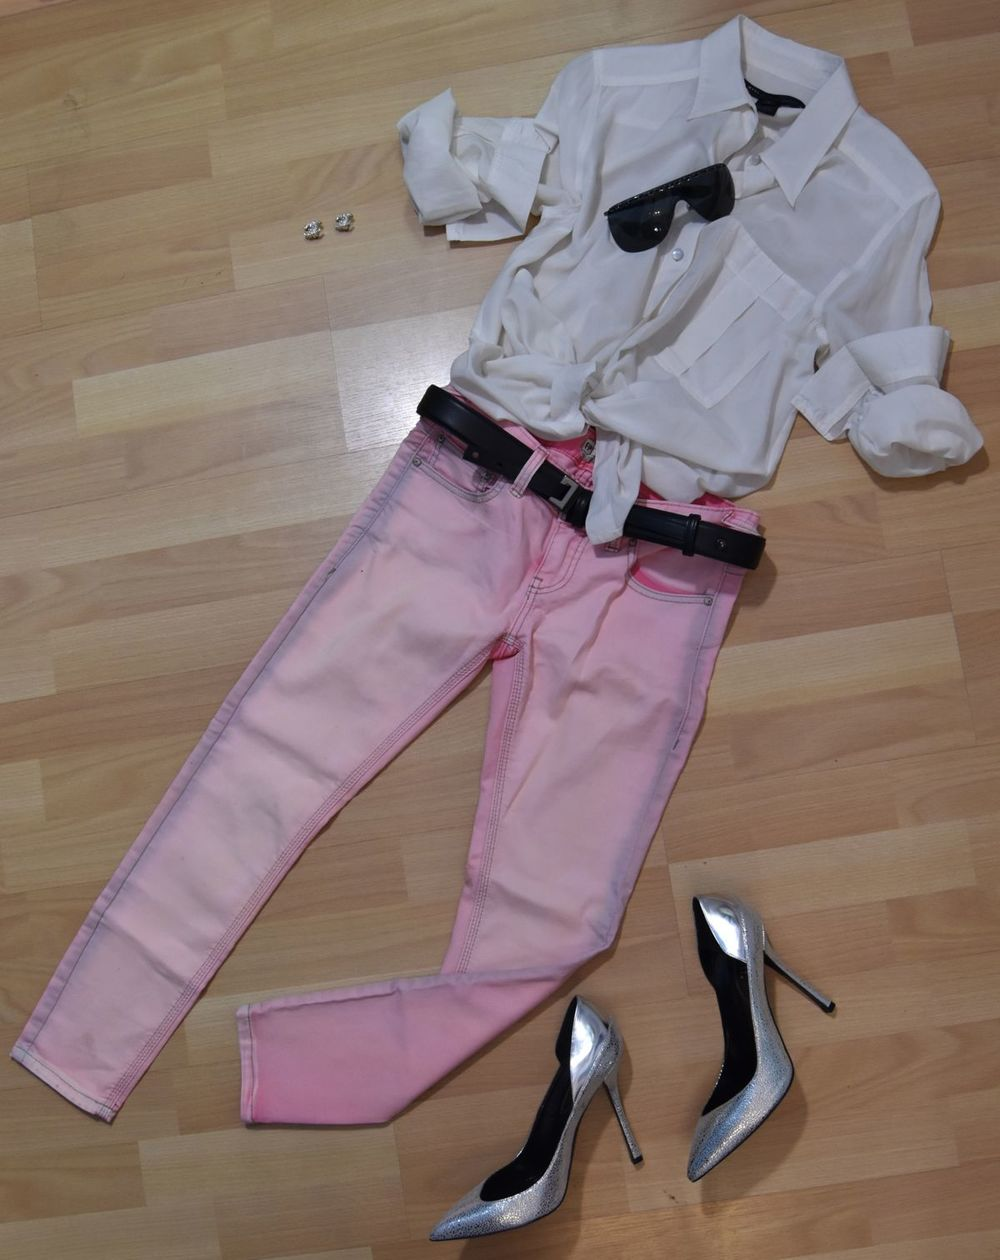 Marc by Marc Jacobs blouse, Free People jeans, Edmundo Castillo pumps available  here  , Worth belt, Chanel sunglasses, Chanel earrings available  here